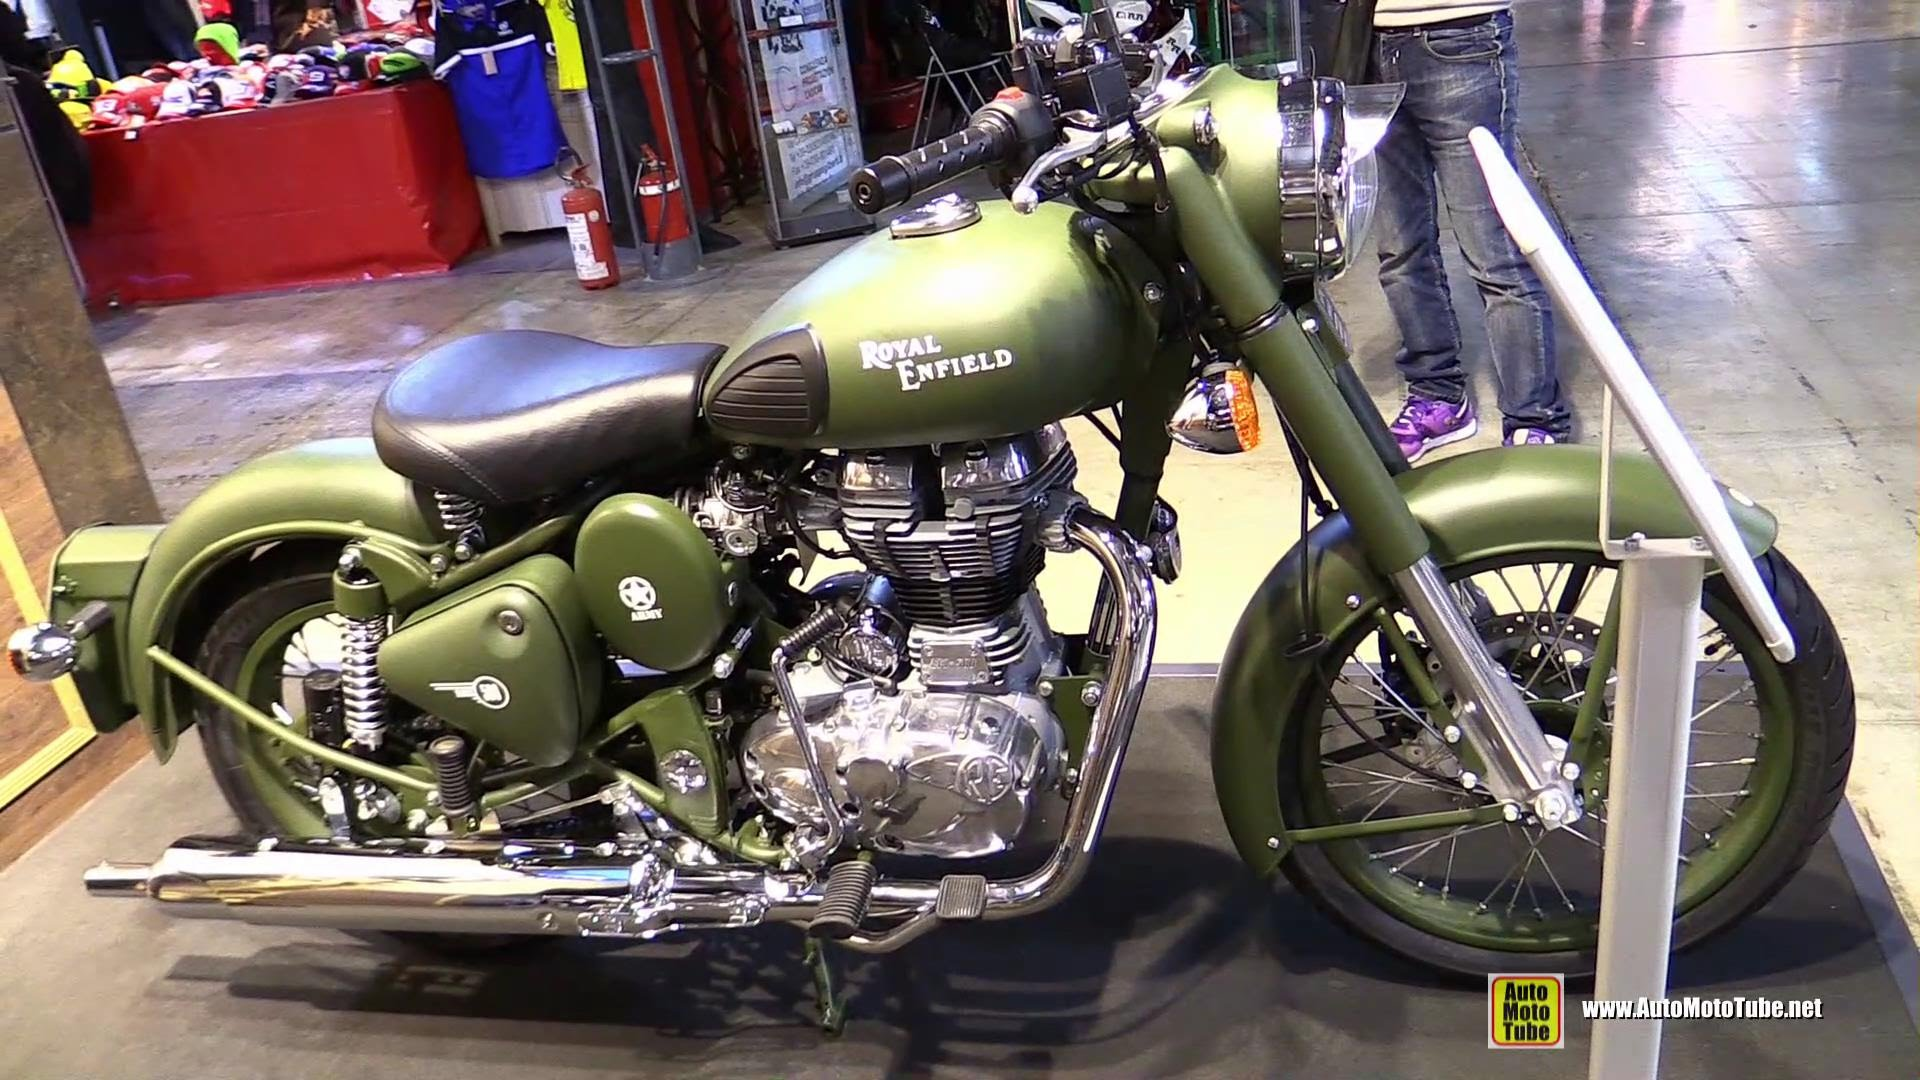 Royal Enfield Bullet 350 Army 1997 images #122765